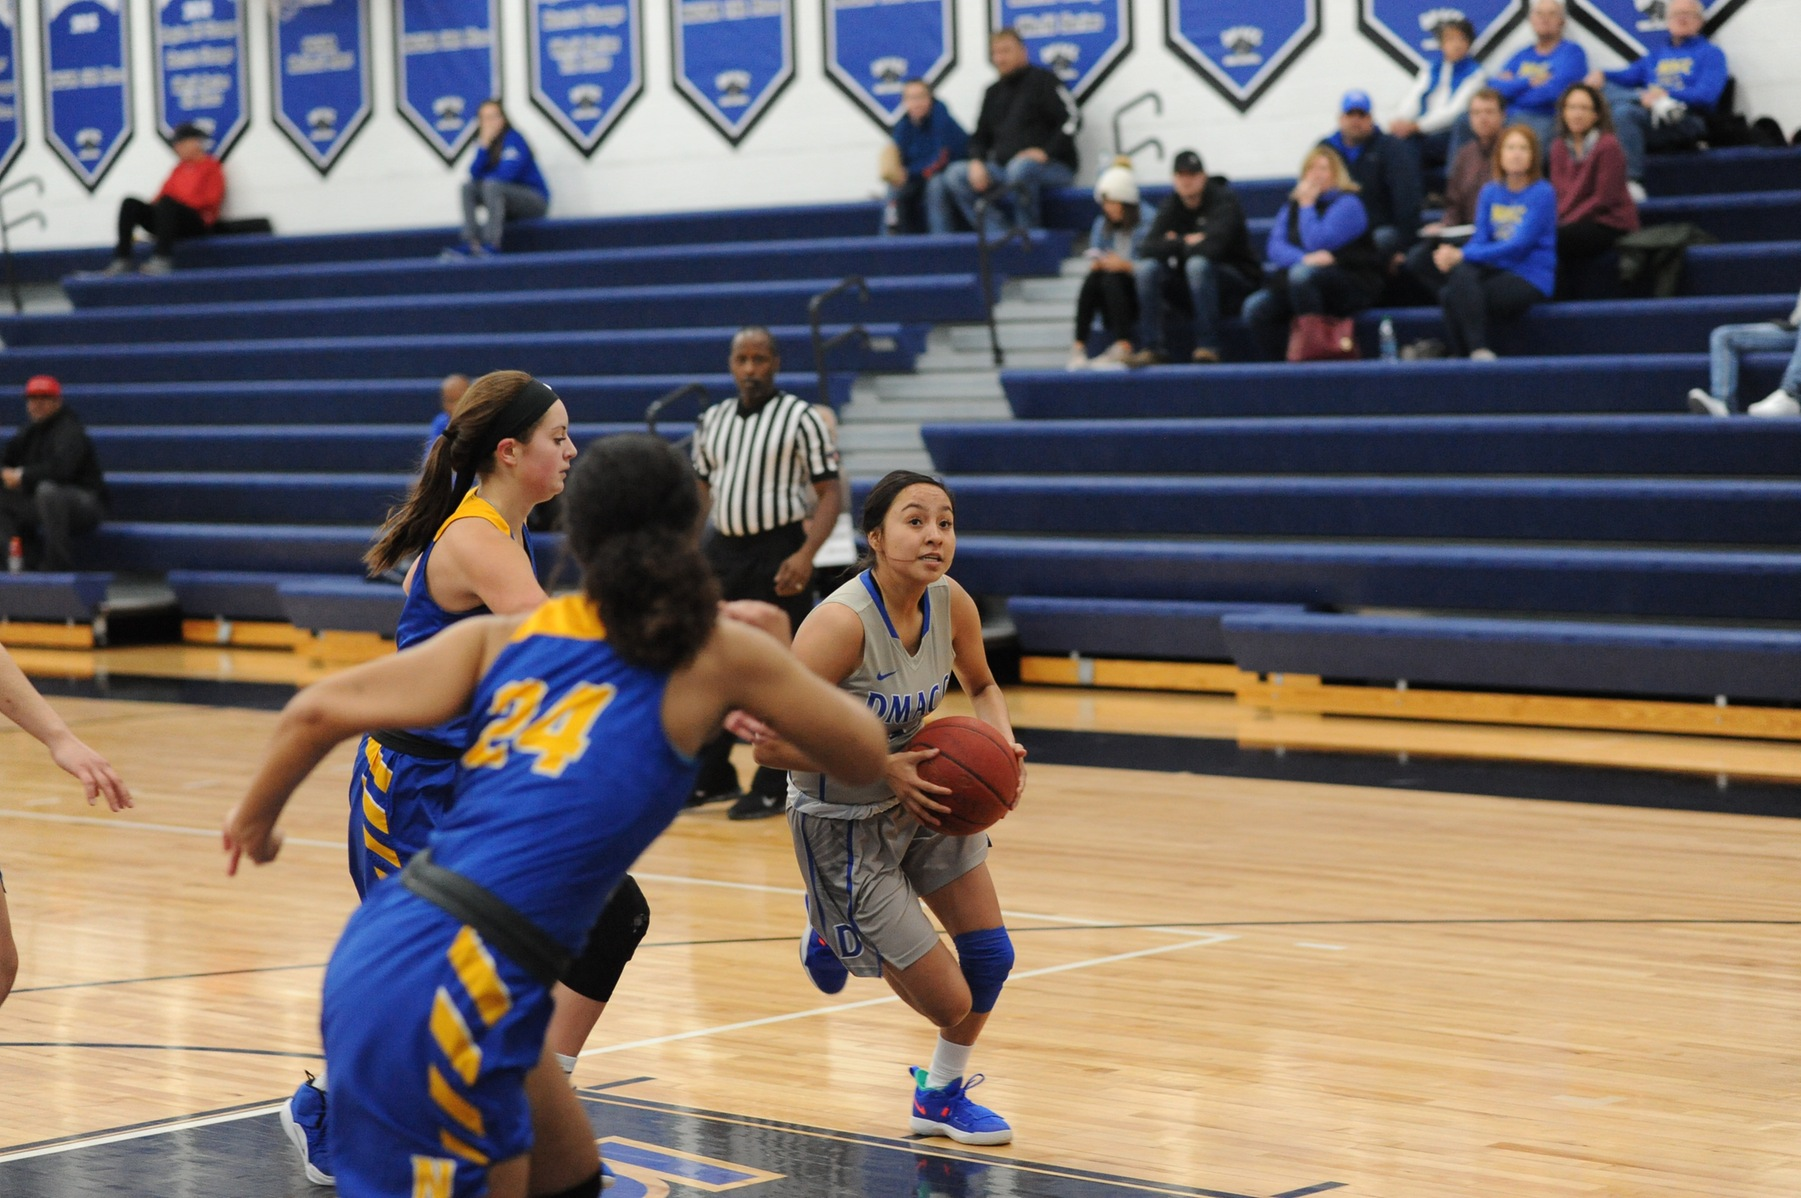 Mena, Porter lead DMACC women's basketball team past ECC, 88-59